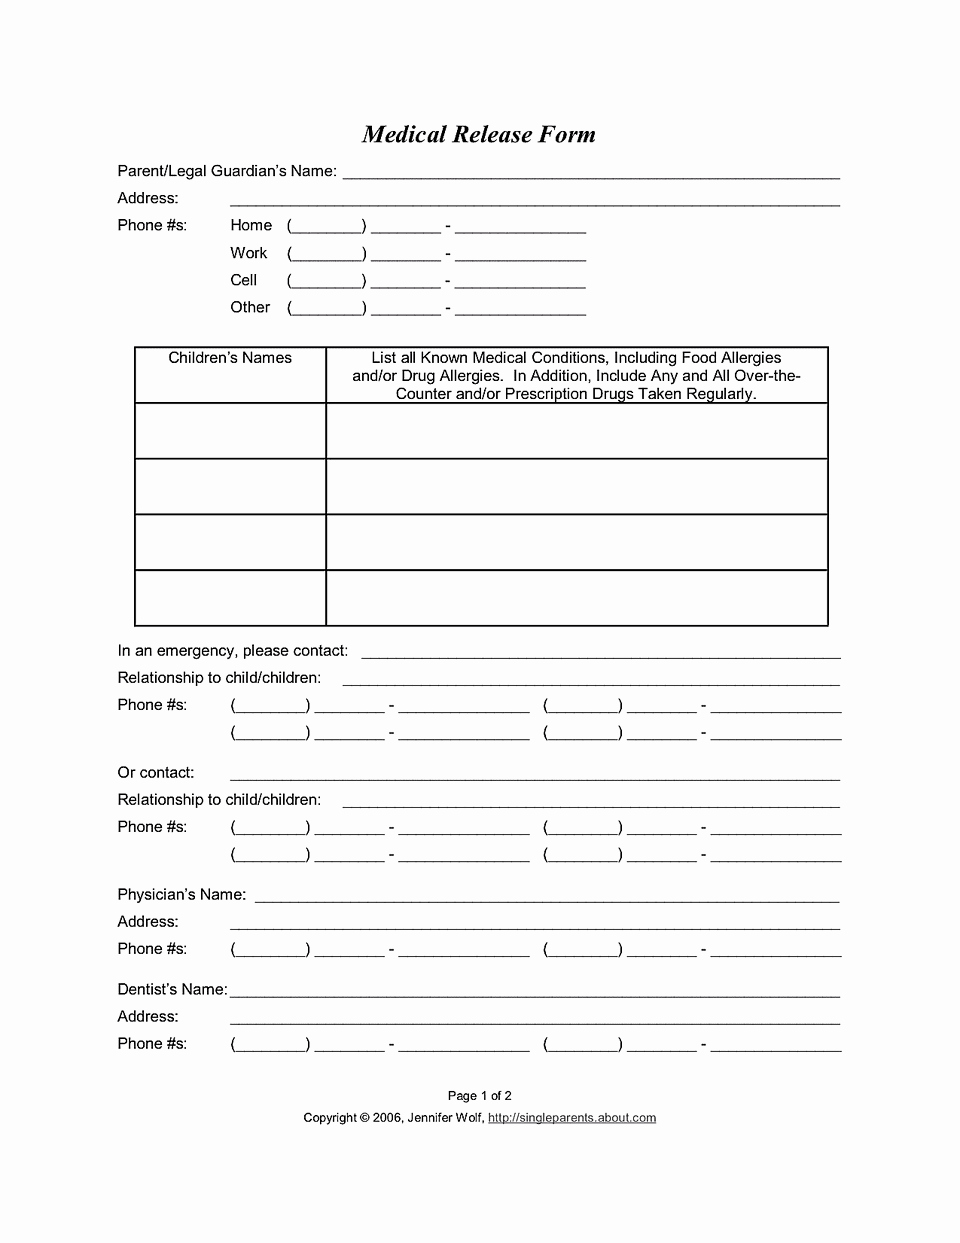 Medical Release form for Consent to Treat Your Kids